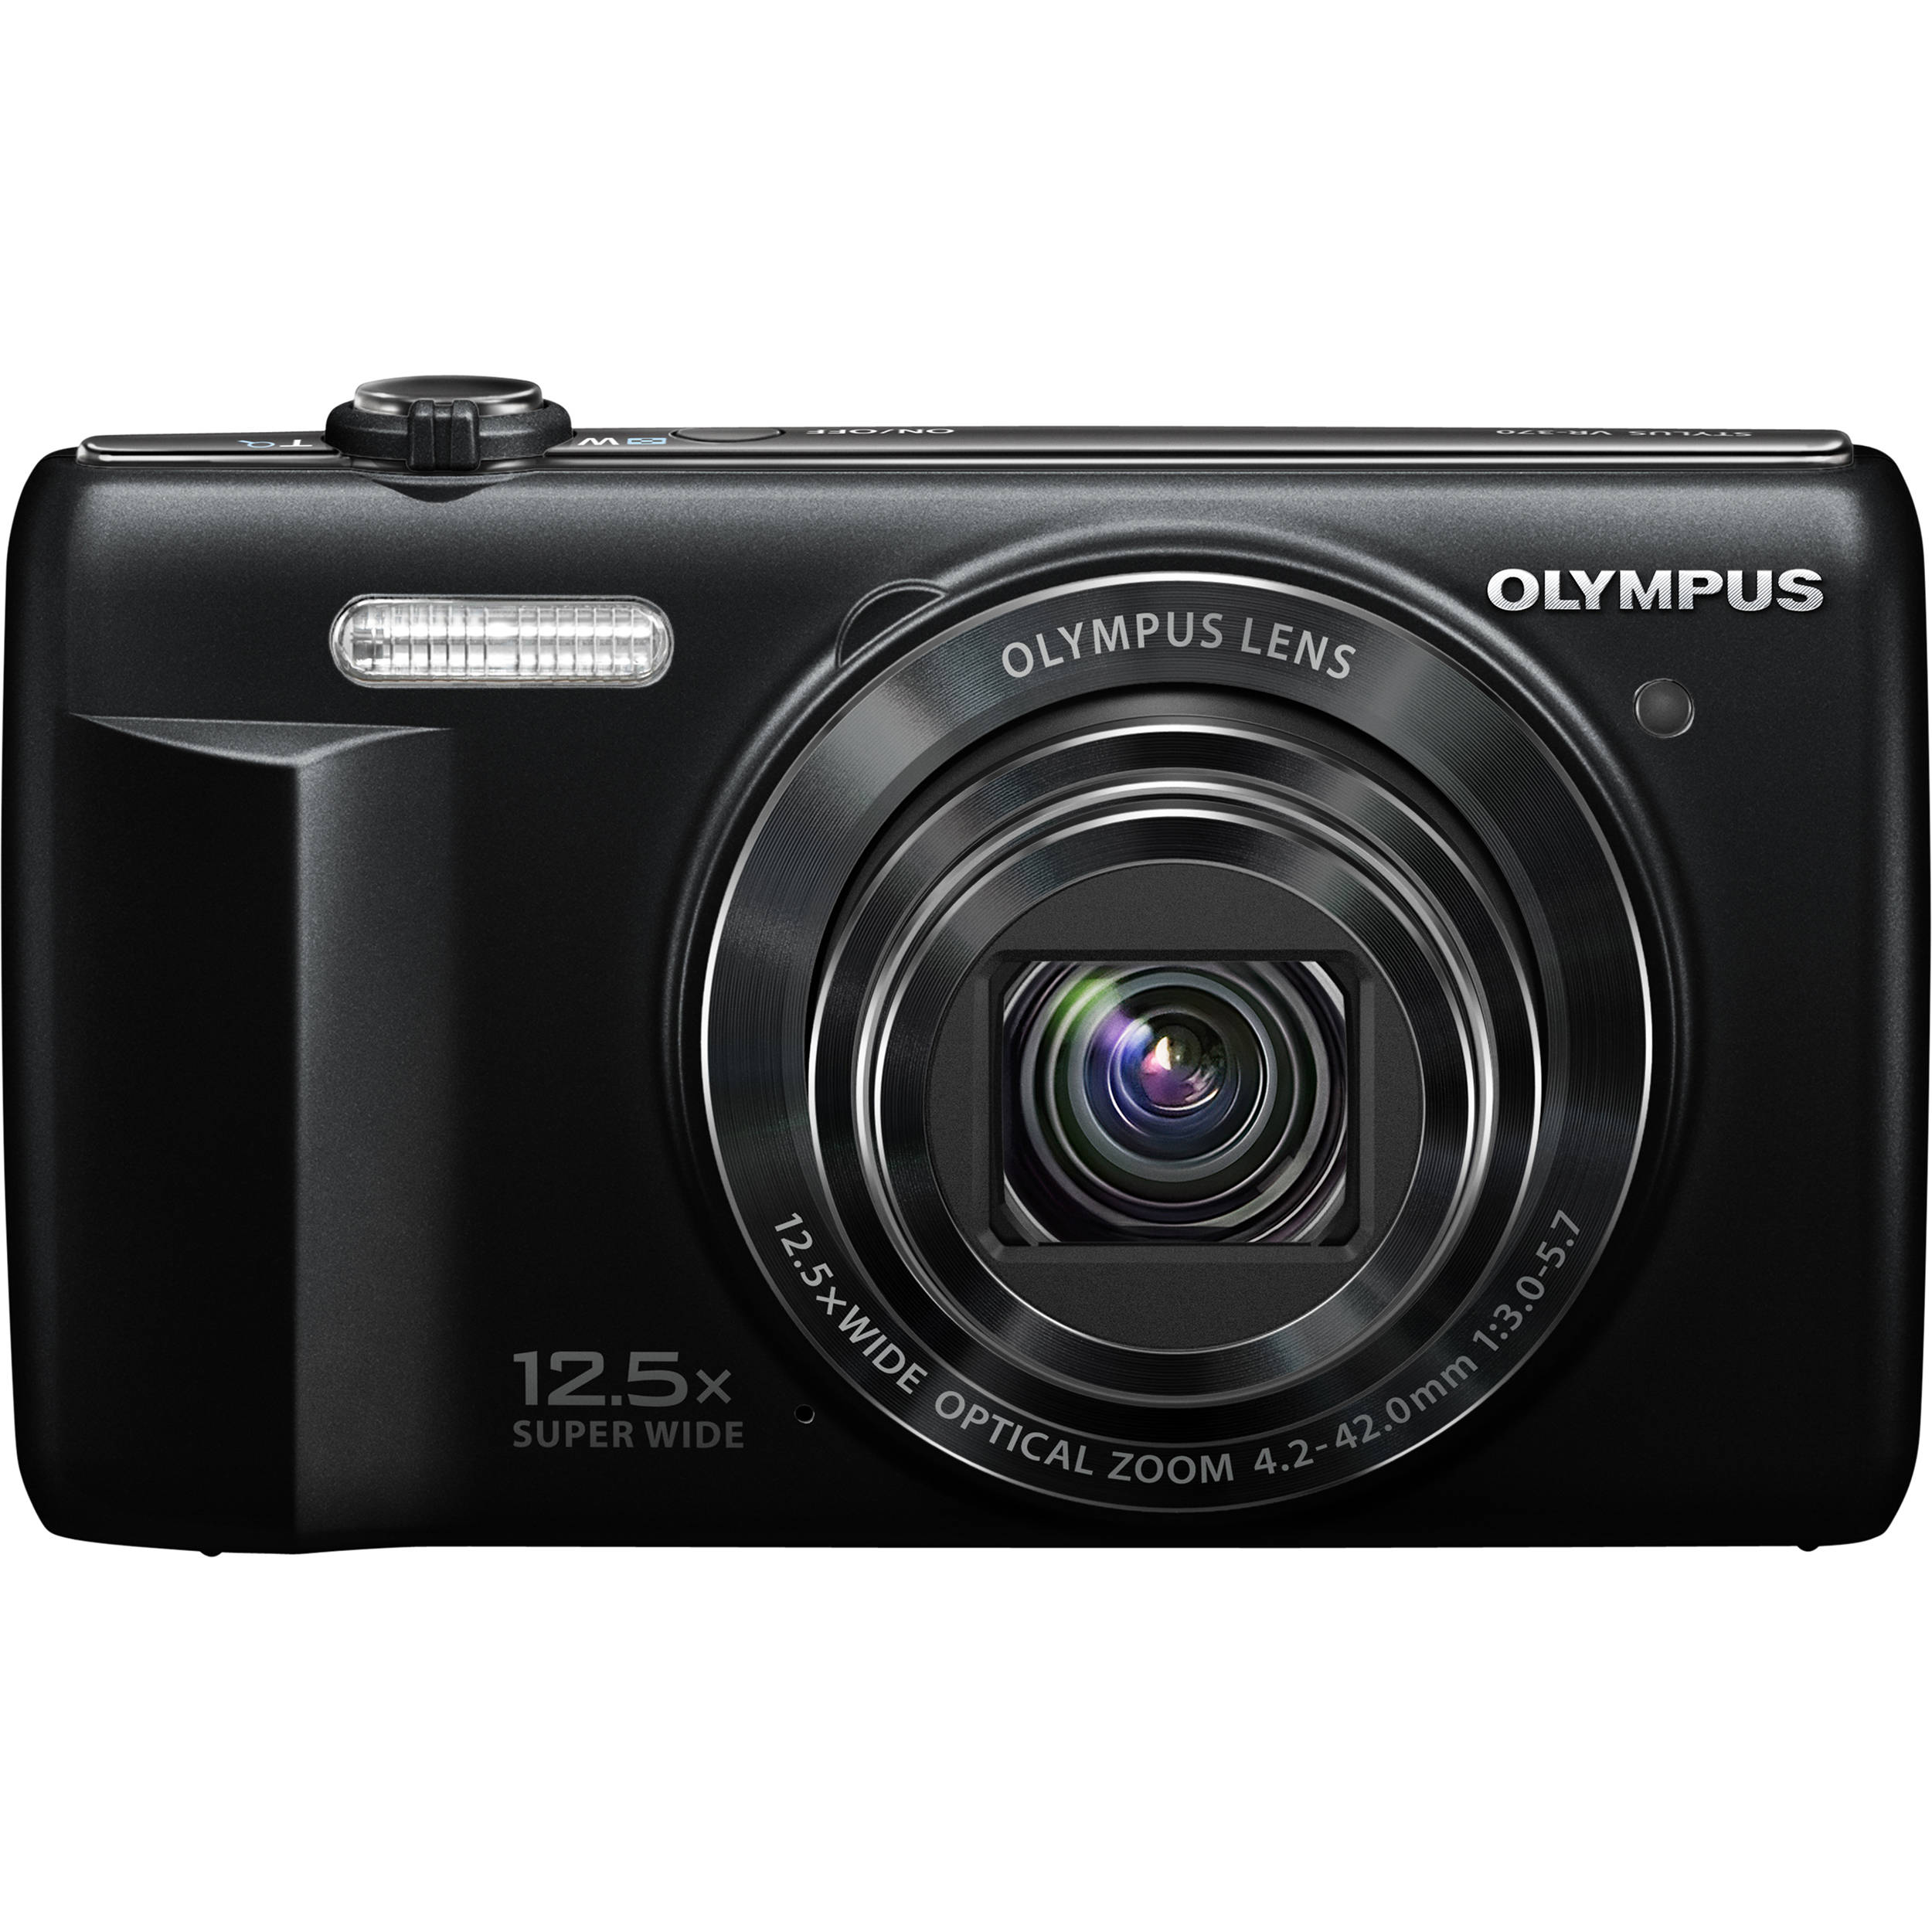 Olympus c 370 zoom software for webcam